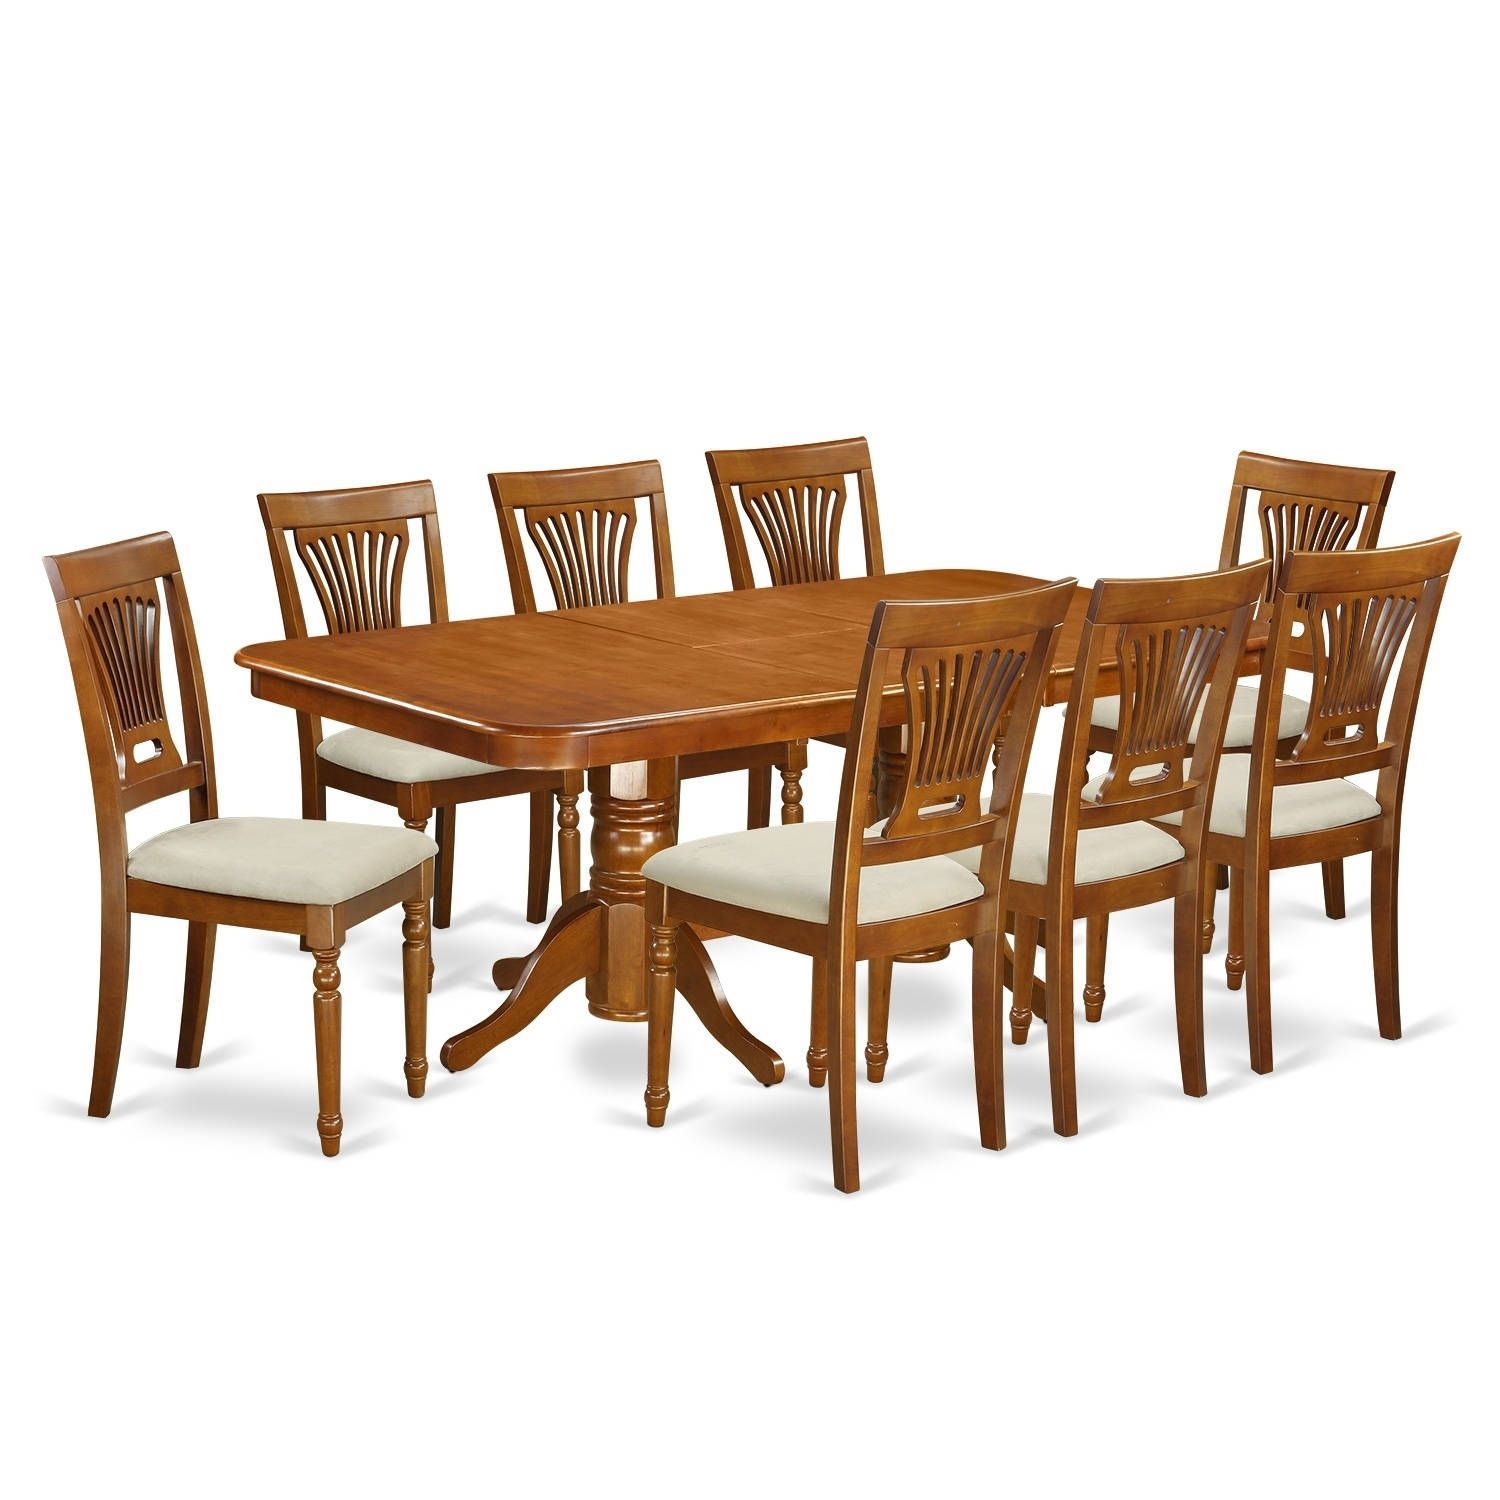 Sbr 9 Pc Dining Room Setdining Table And 8 Dining Chairs Prepossessing 8 Piece Dining Room Set Inspiration Design